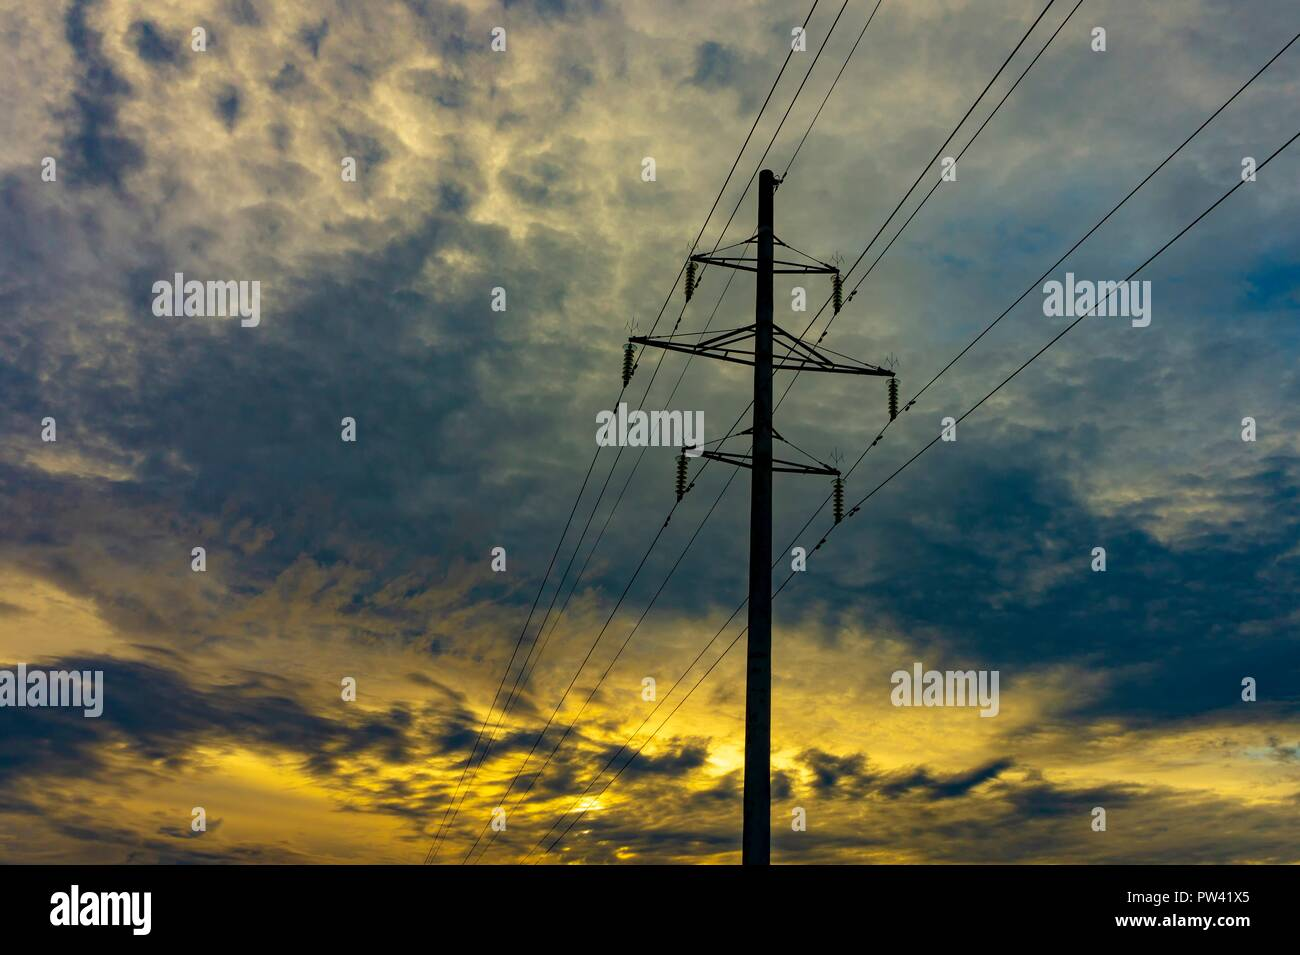 High tension electricity power lines and pole silhouetted against a colorful sunset sky with cloud cover and copy space - Stock Image